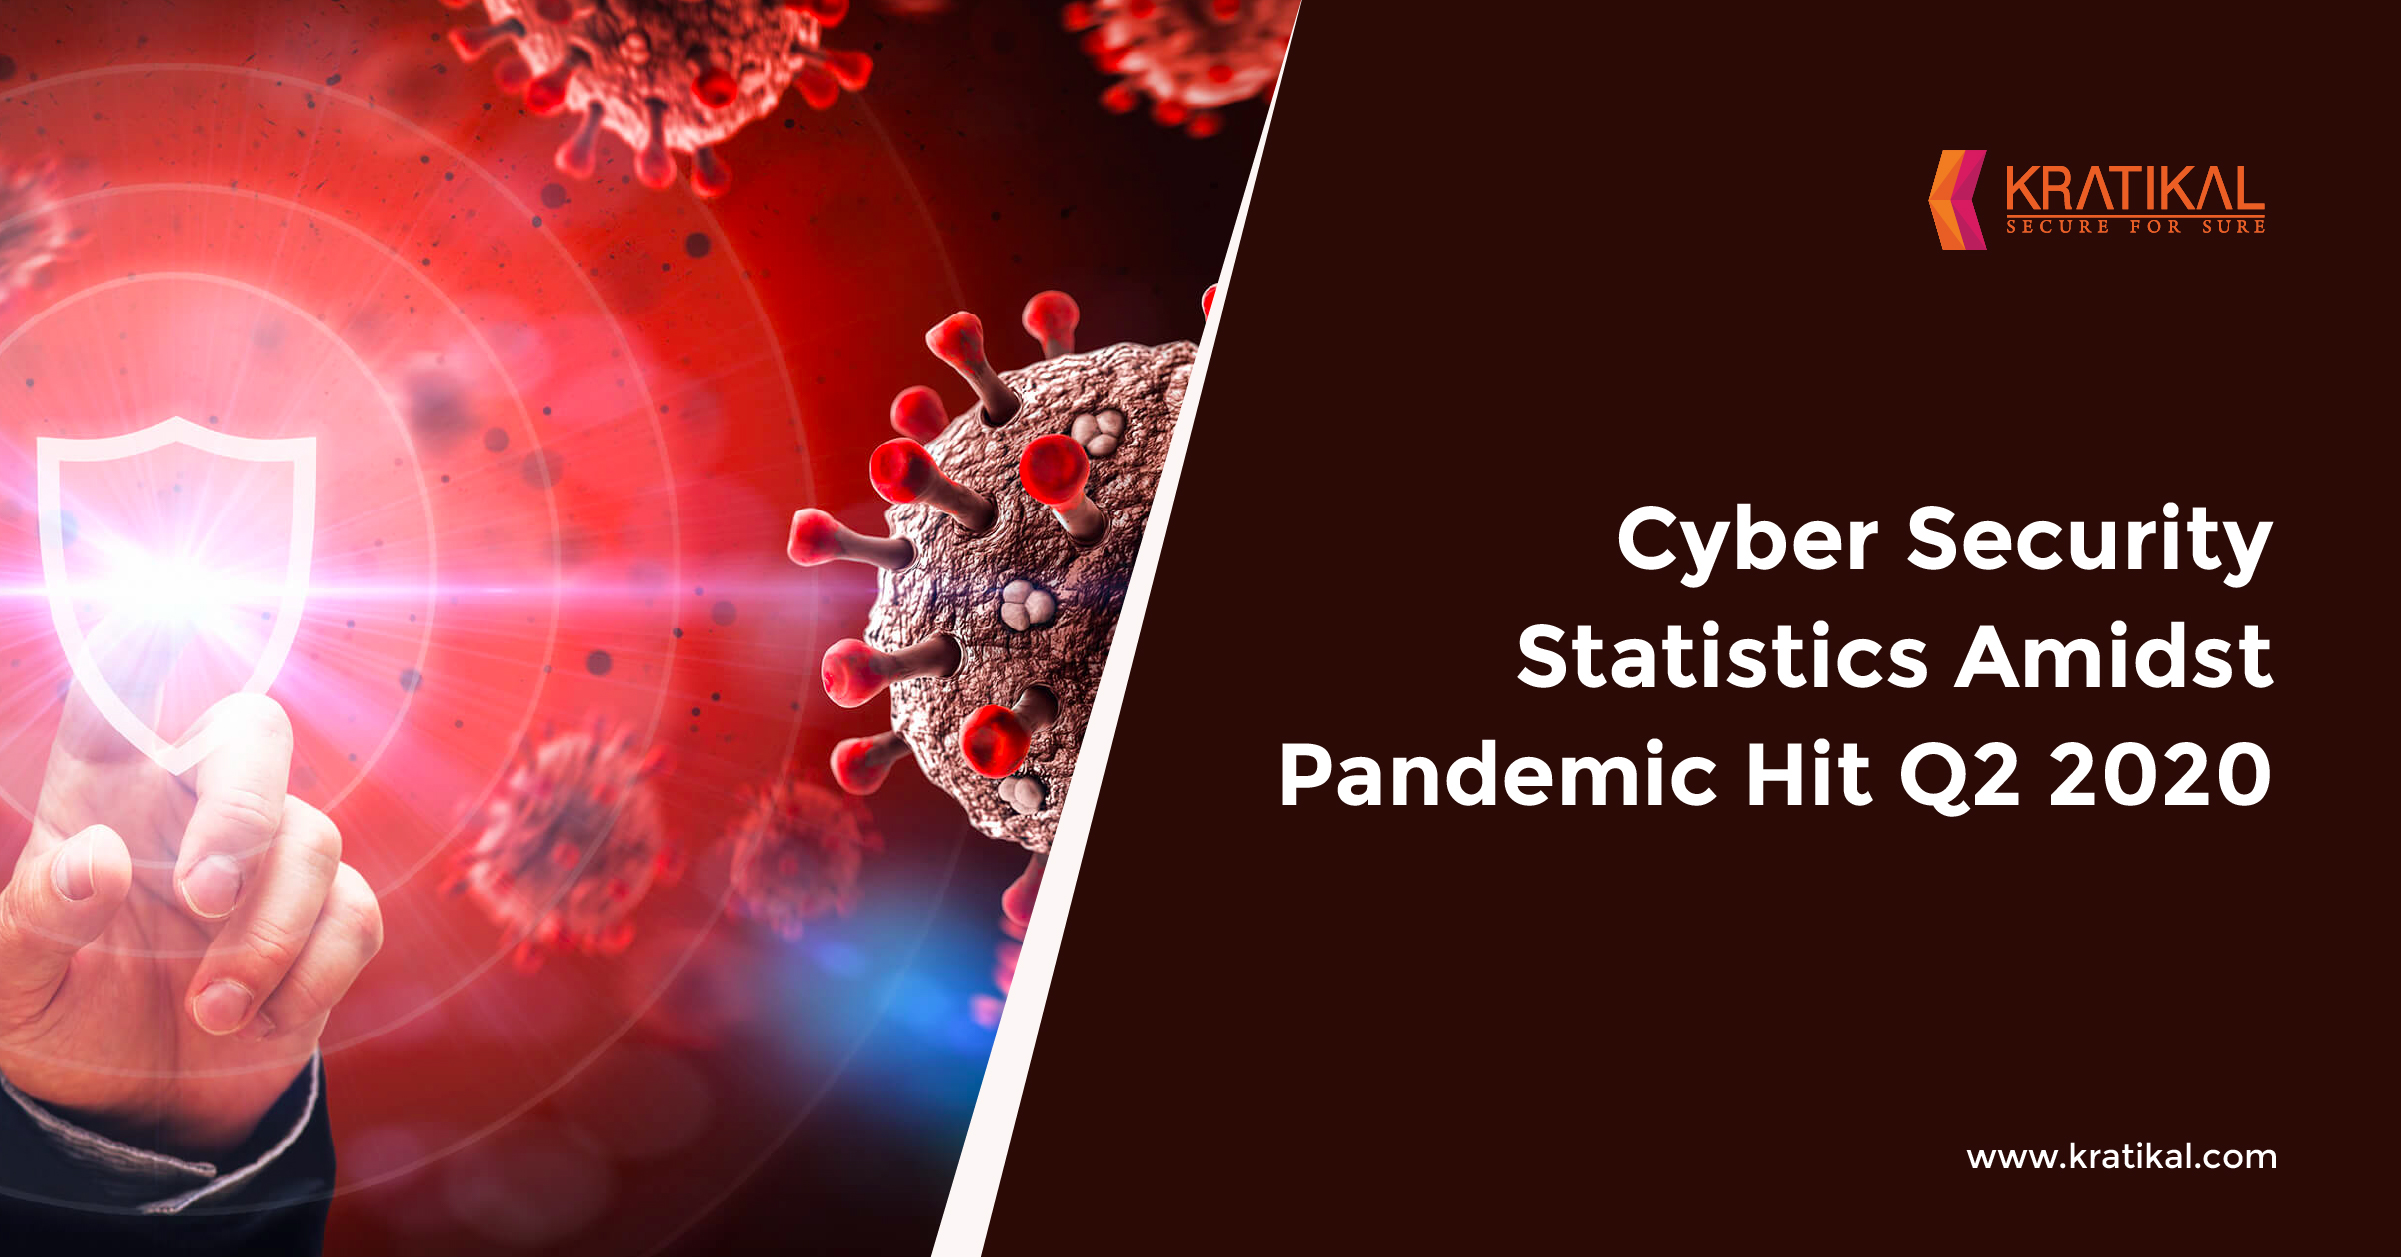 Cyber Security Statistics Amidst Pandemic Hit Q2 2020